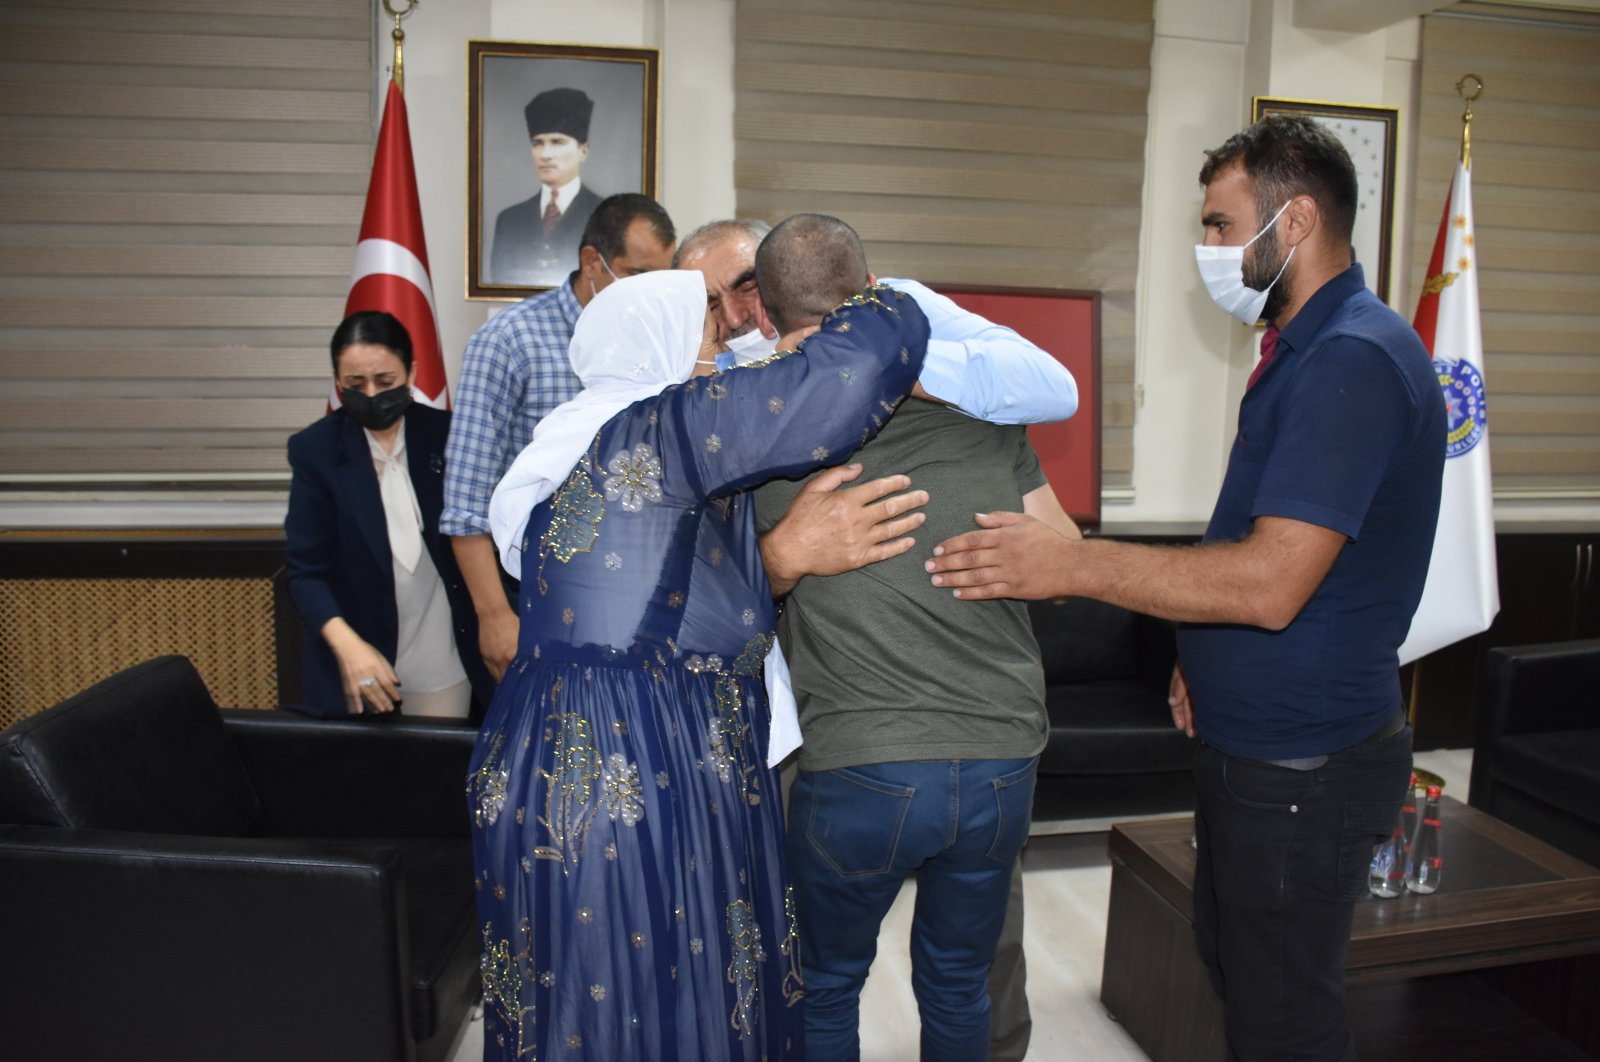 Another family protesting the PKK has been reunited with their child, Şırnak, Turkey, Aug. 29, 2021 (AA Photo)